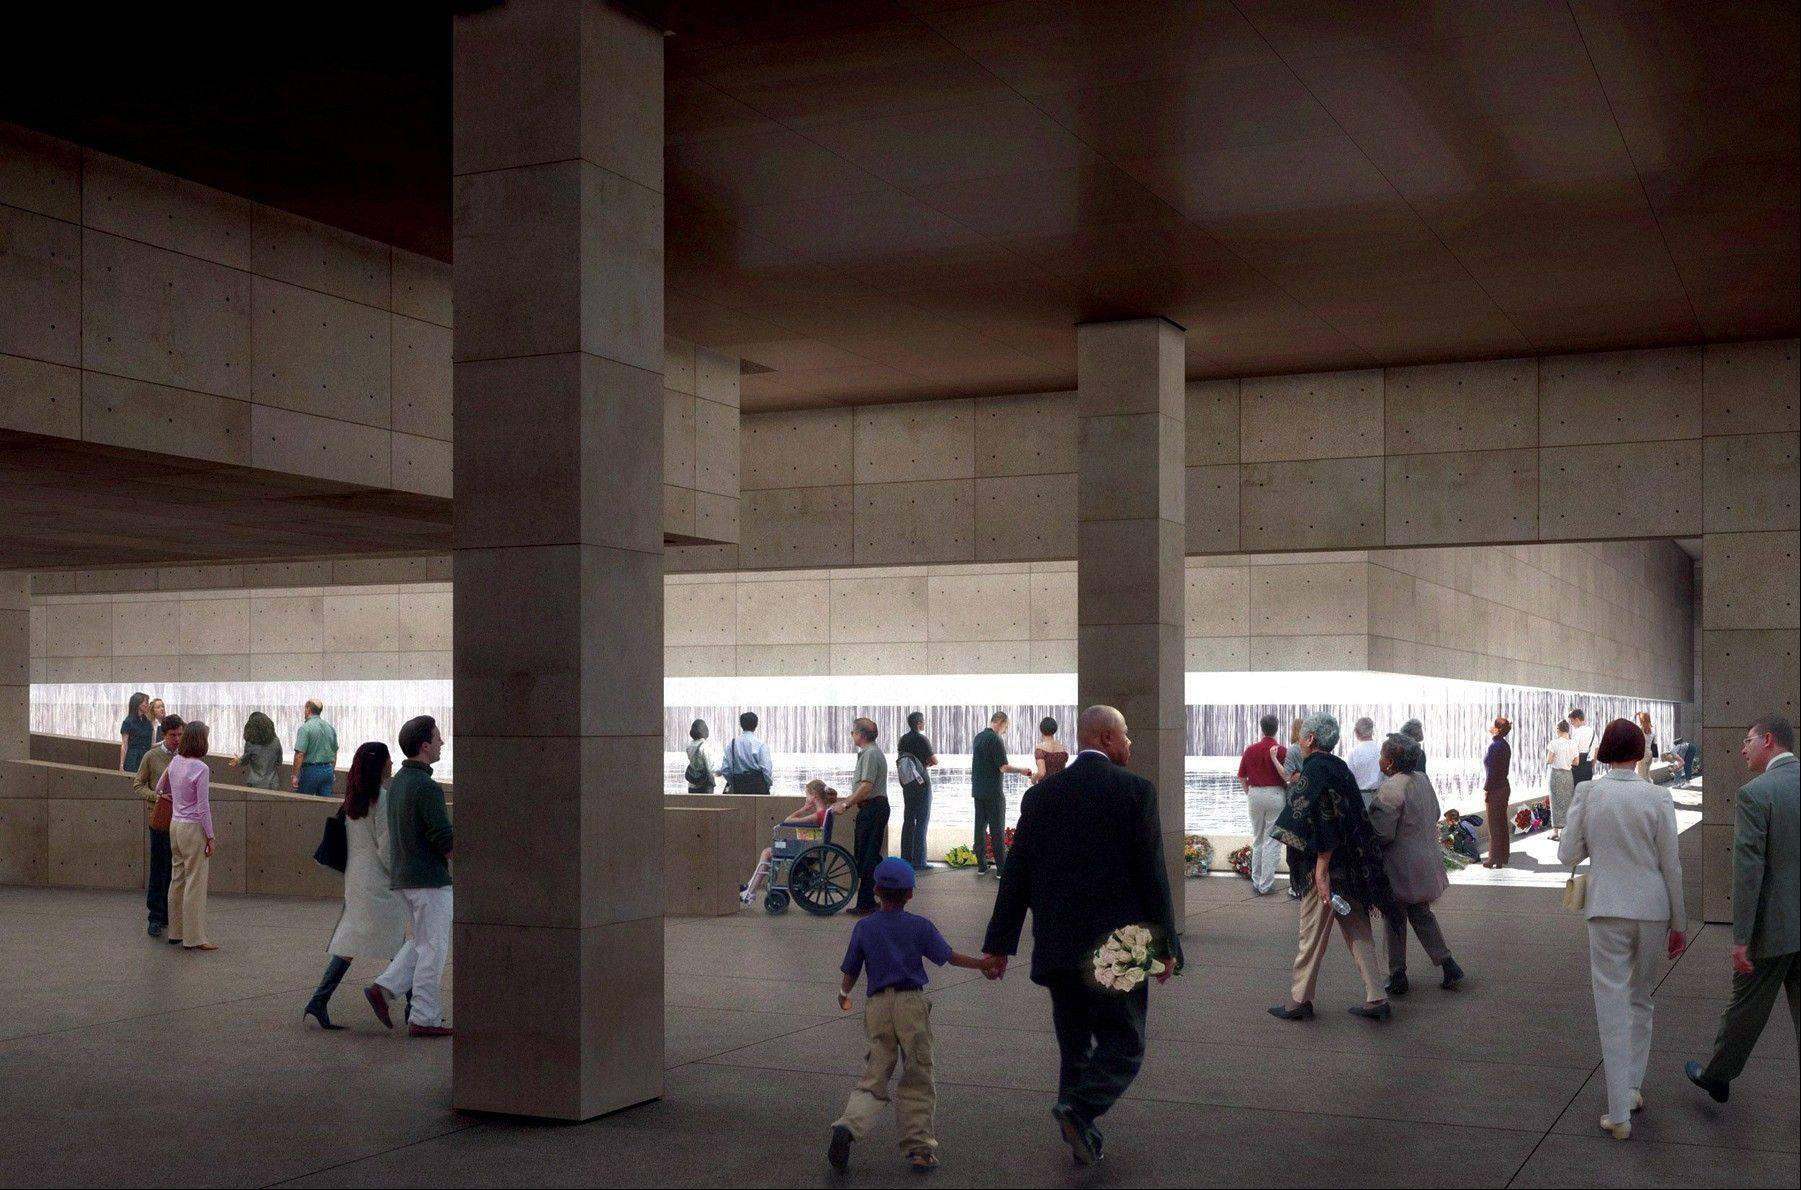 An artist's rendering of the Memorial Hall looking at the South Footprint of the World Trade Center is shown.